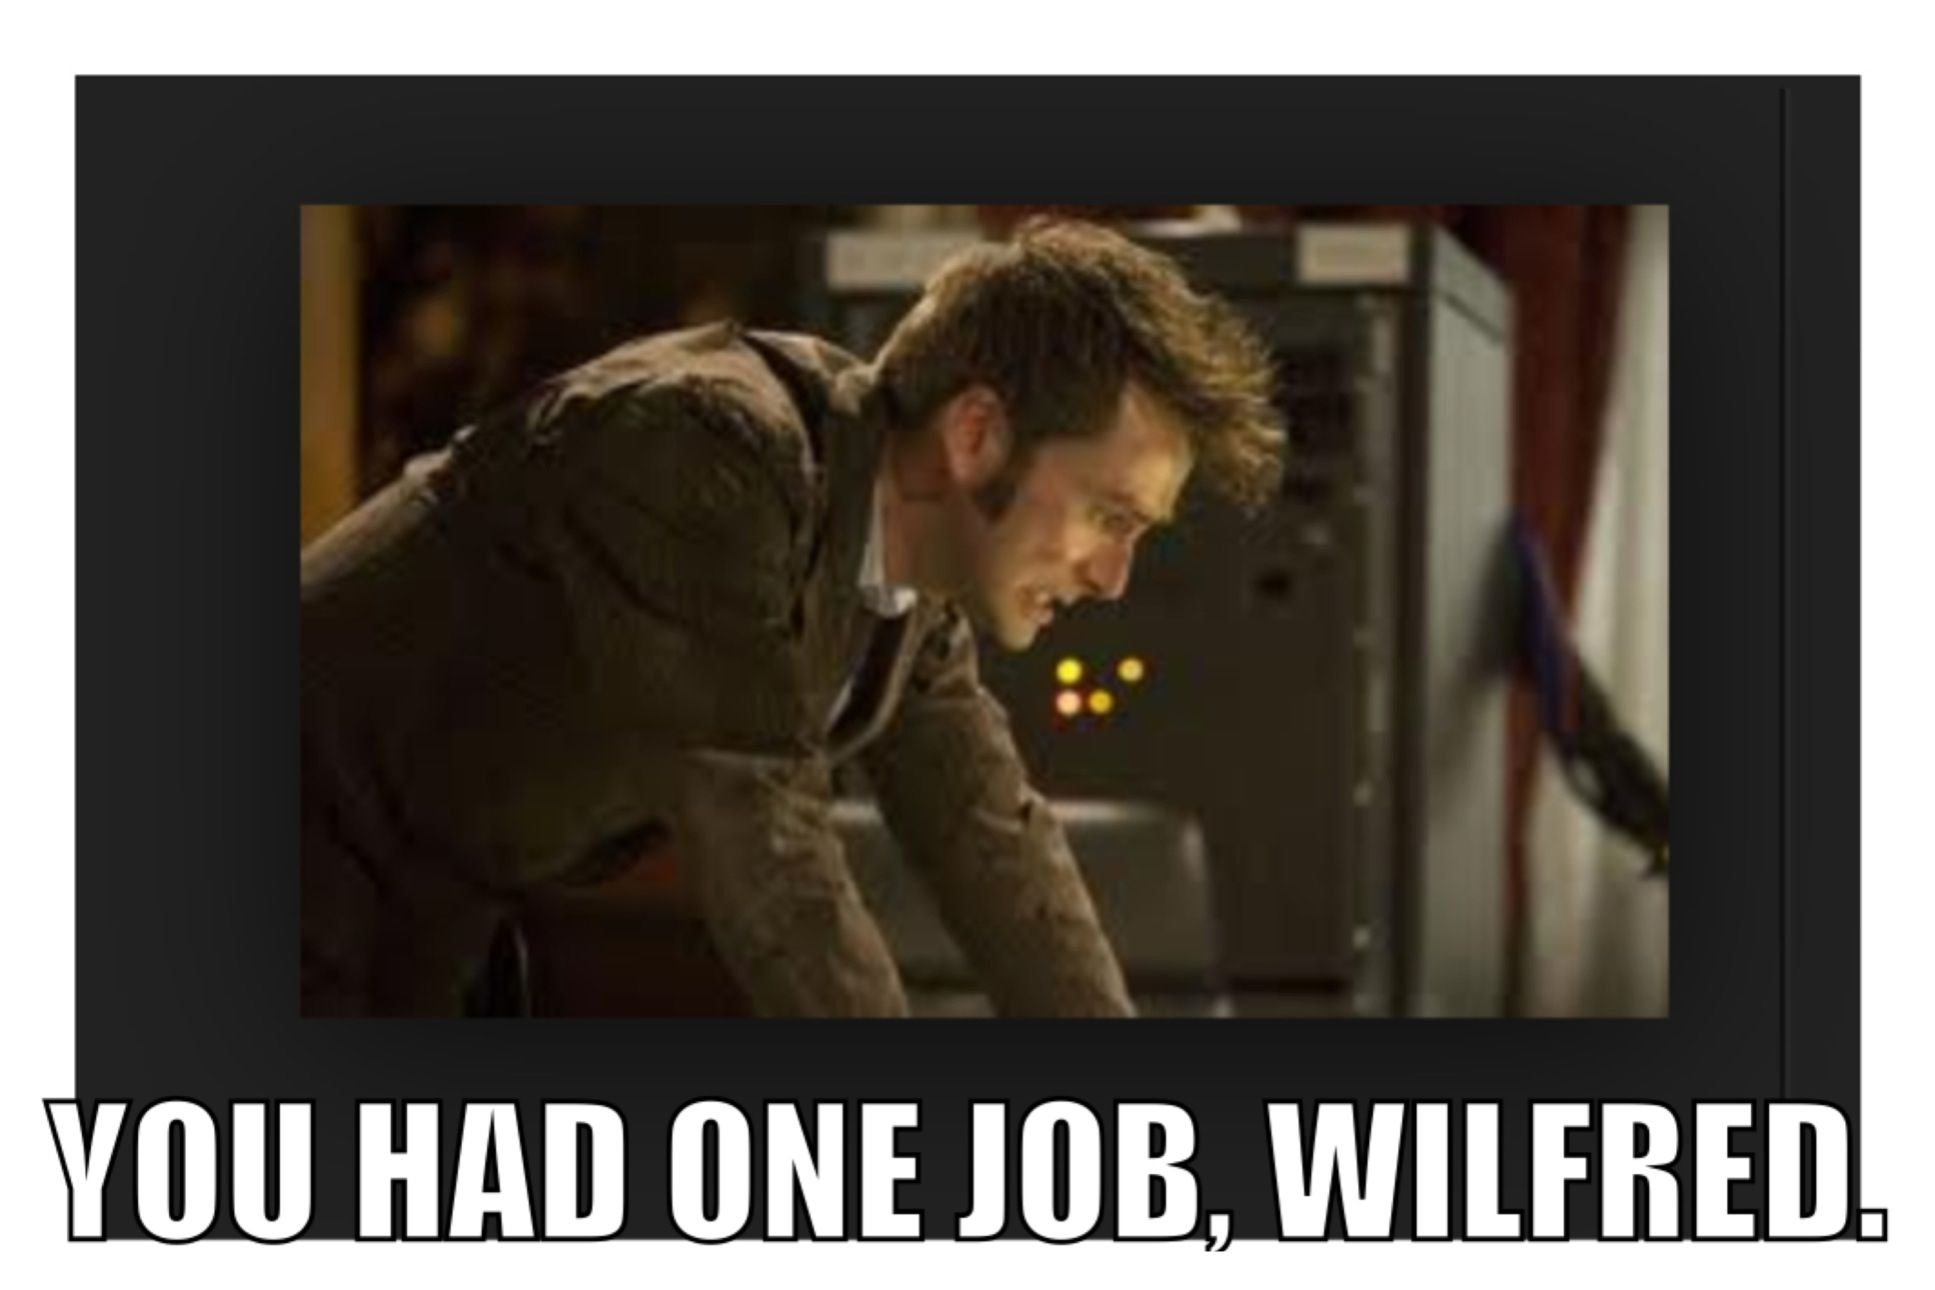 Doctor Who Meme The End Of Time Wilfred Mott Doctor Who Meme You Had One Job Doctor Who